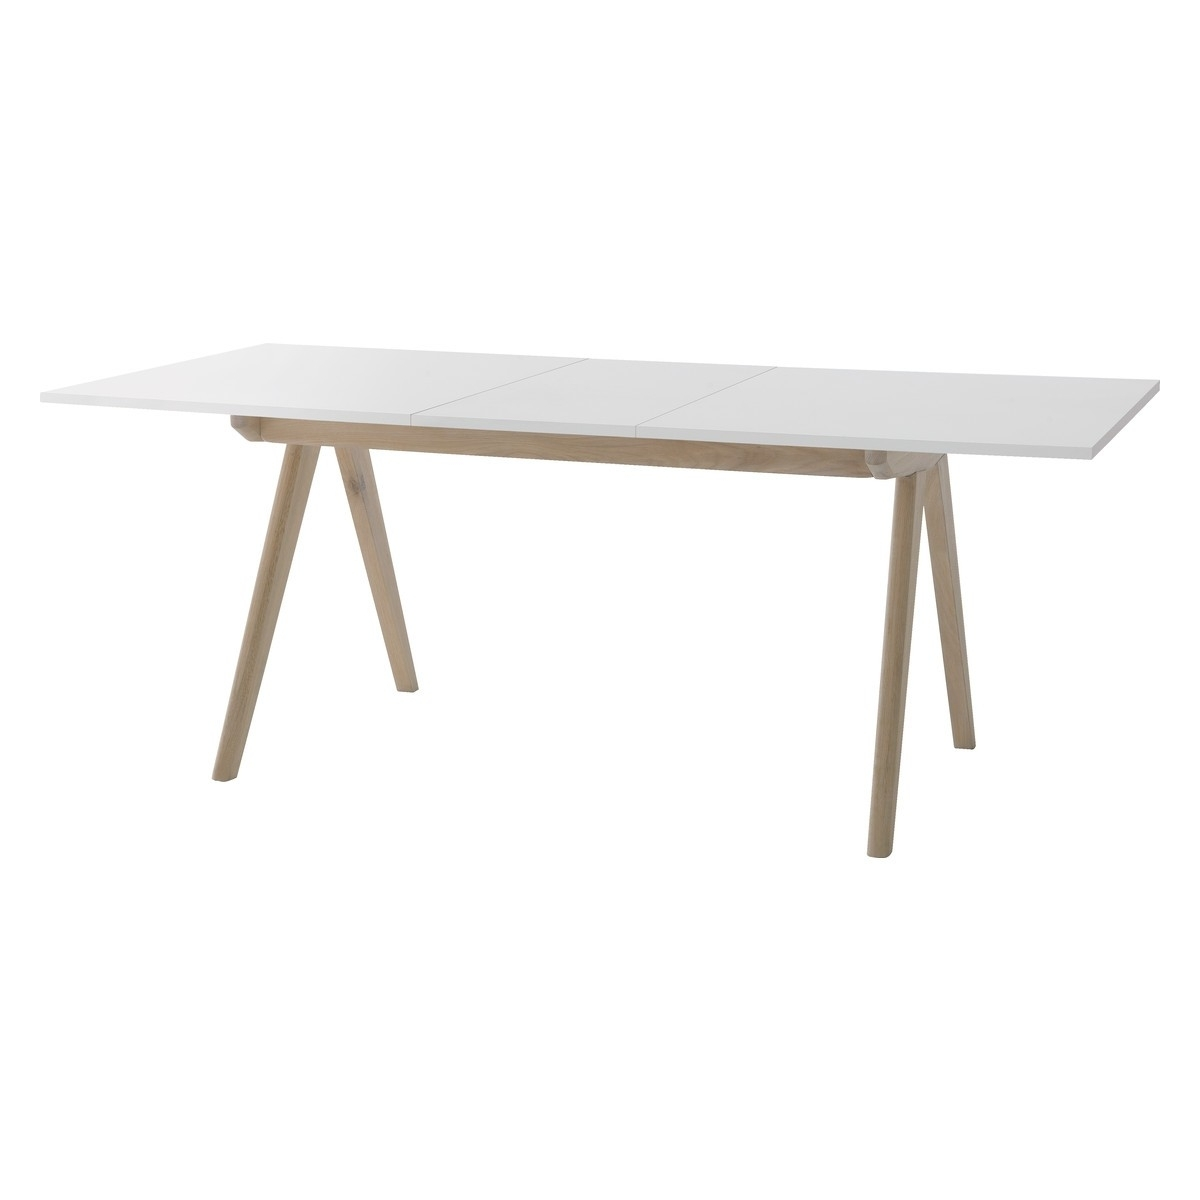 Buy Now At Habitat Uk Inside Next White Dining Tables (View 5 of 25)